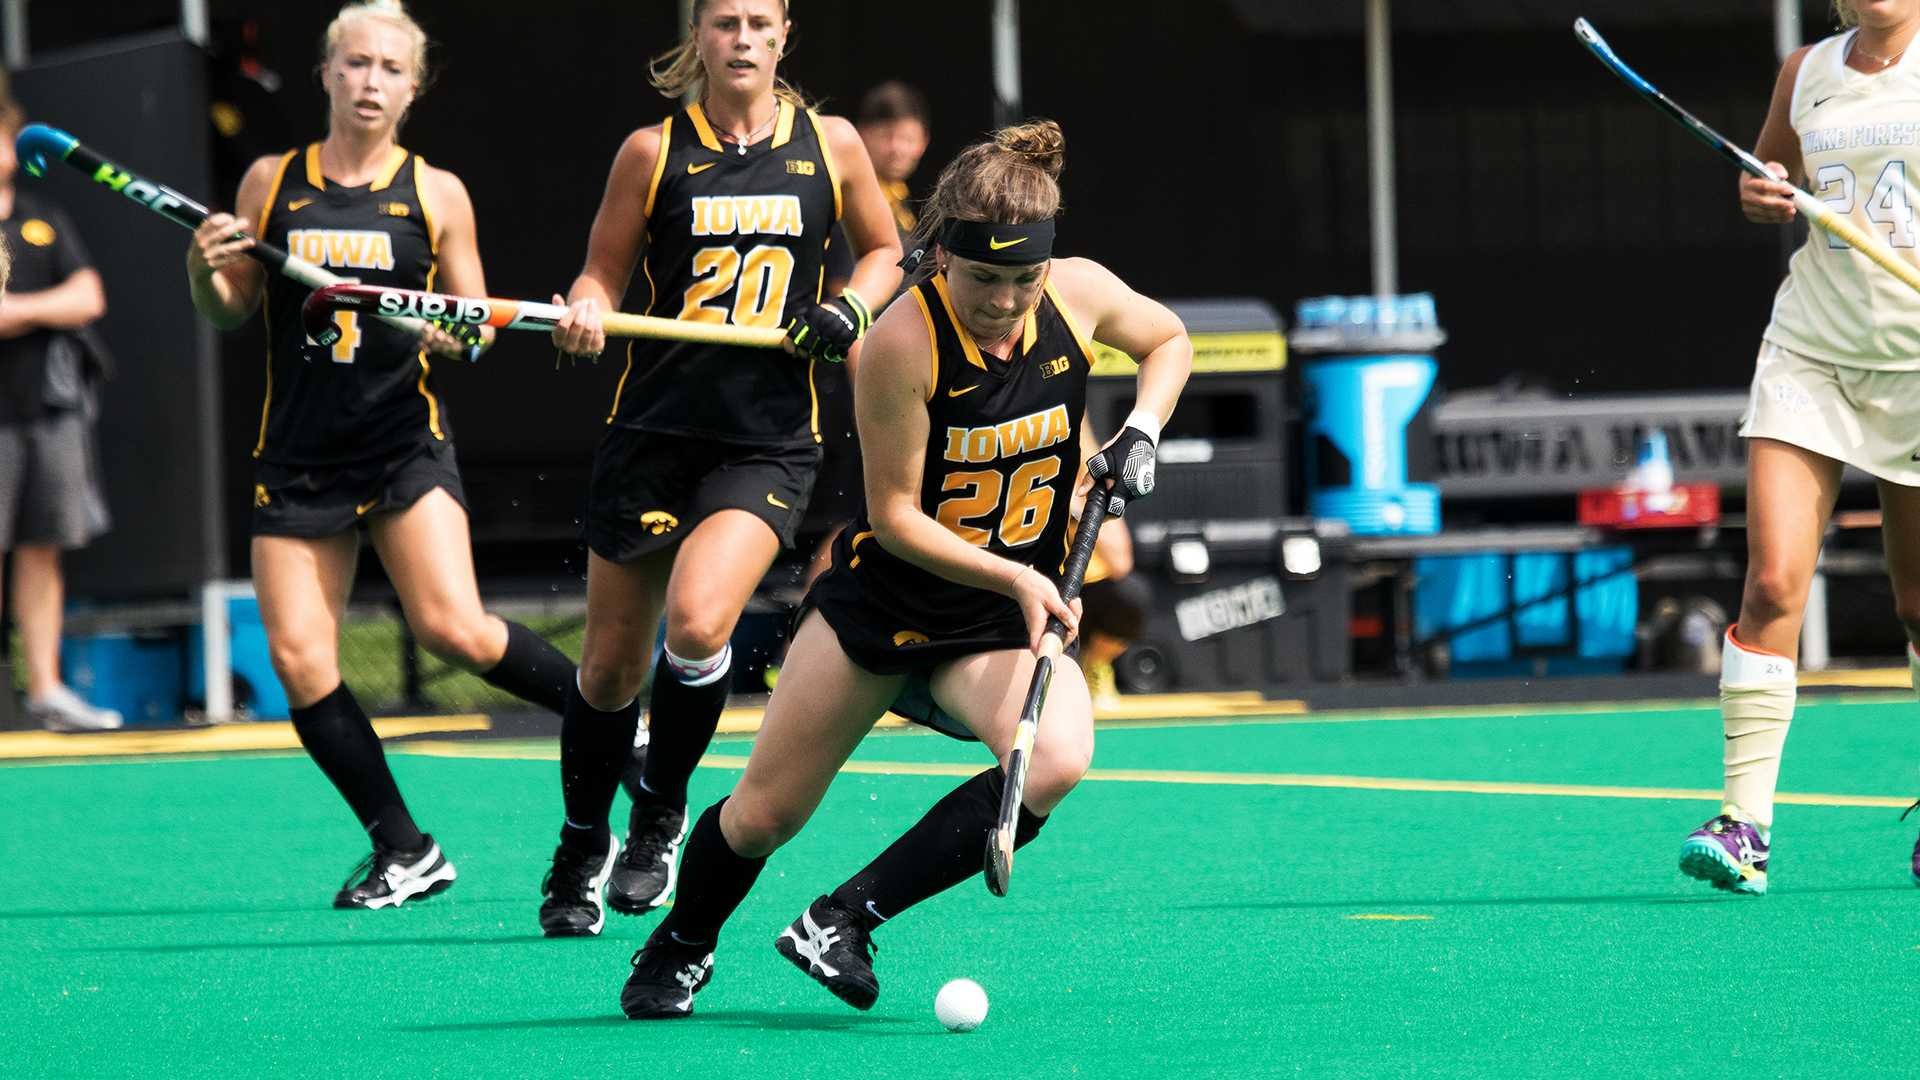 Iowa's Madeleine Murphy plays the ball during the Iowa vs. Wake Forest field hockey match on Saturday, August 26, 2017. Wake Forest defeated Iowa by a final score of 3-2. (David Harmantas/The Daily Iowan)